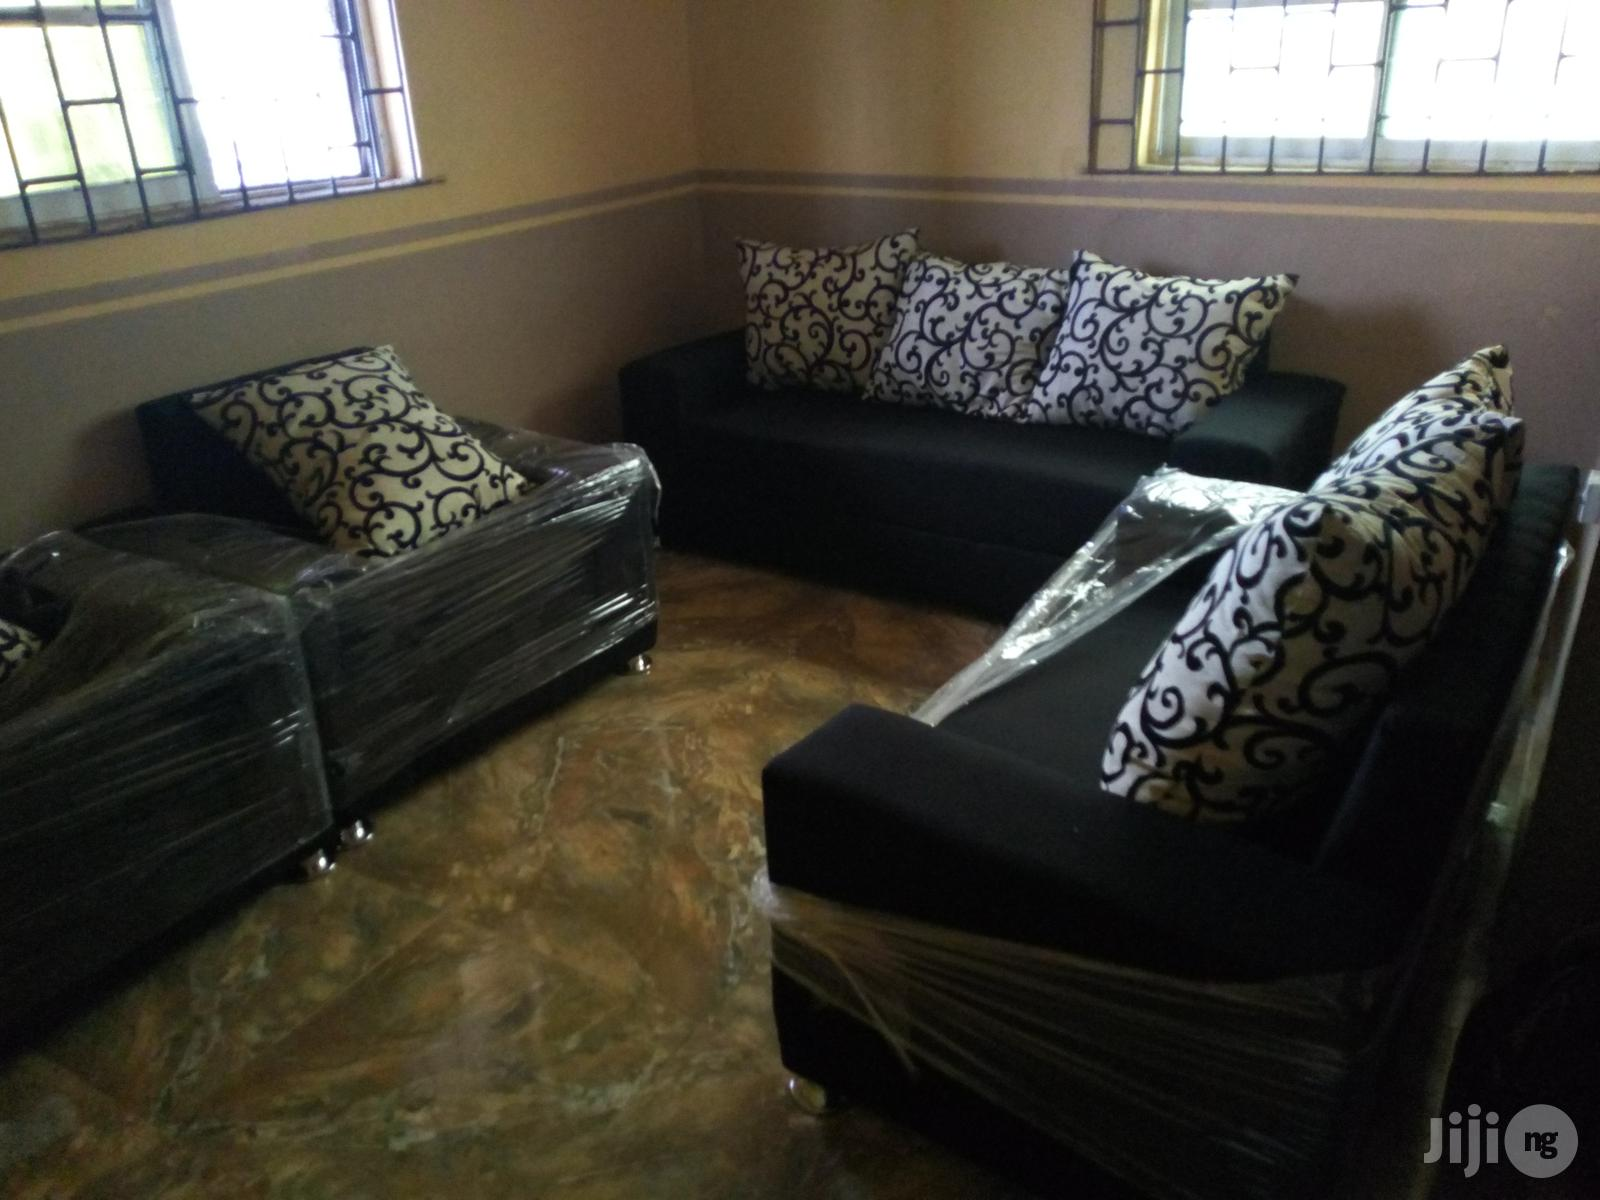 Complete Set of Sofa for Sale | Furniture for sale in Surulere, Lagos State, Nigeria